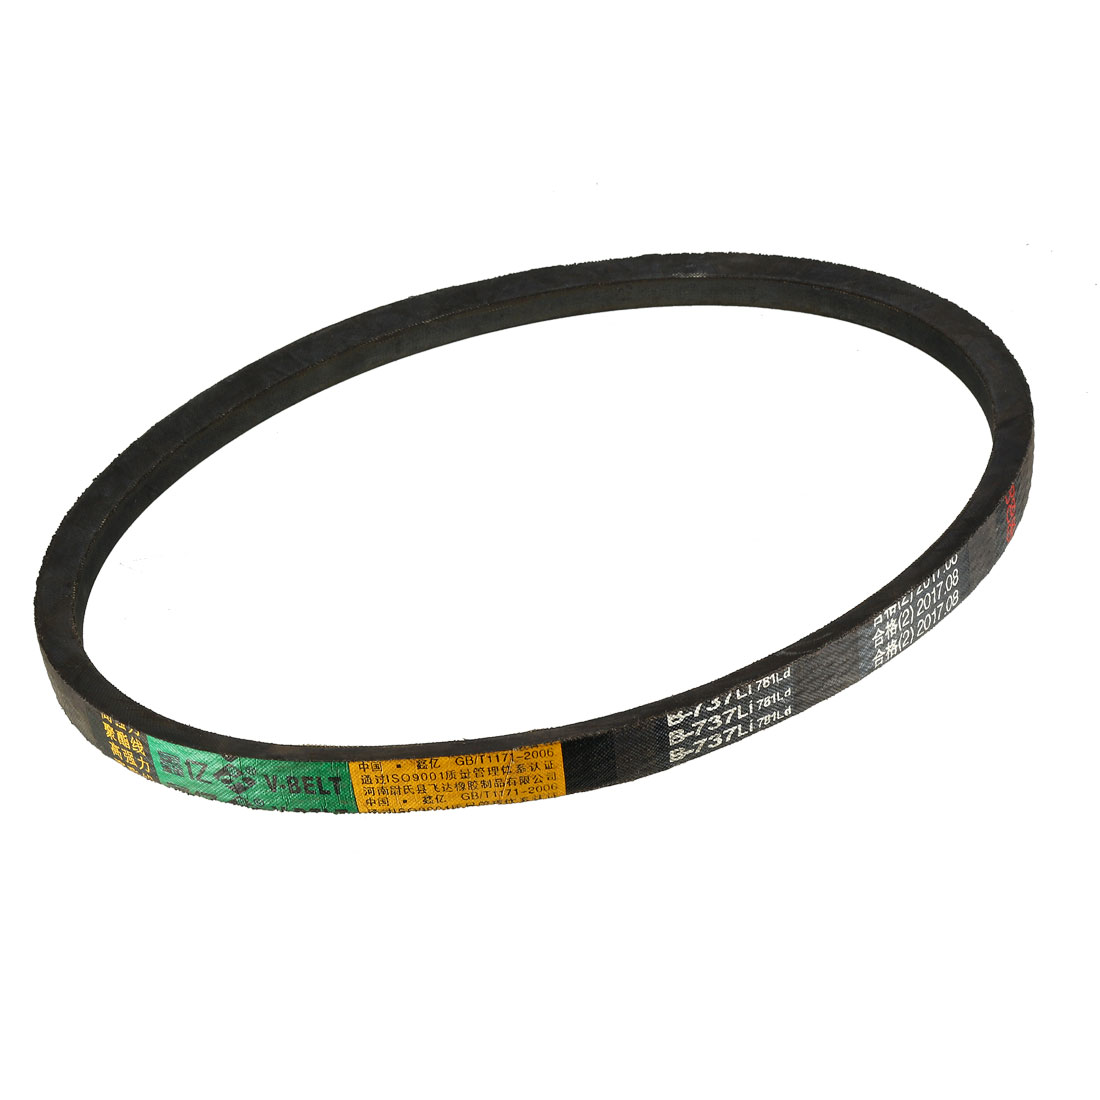 B-737/B29 Drive V-Belt Inner Girth 29-inch Industrial Power Rubber Belt